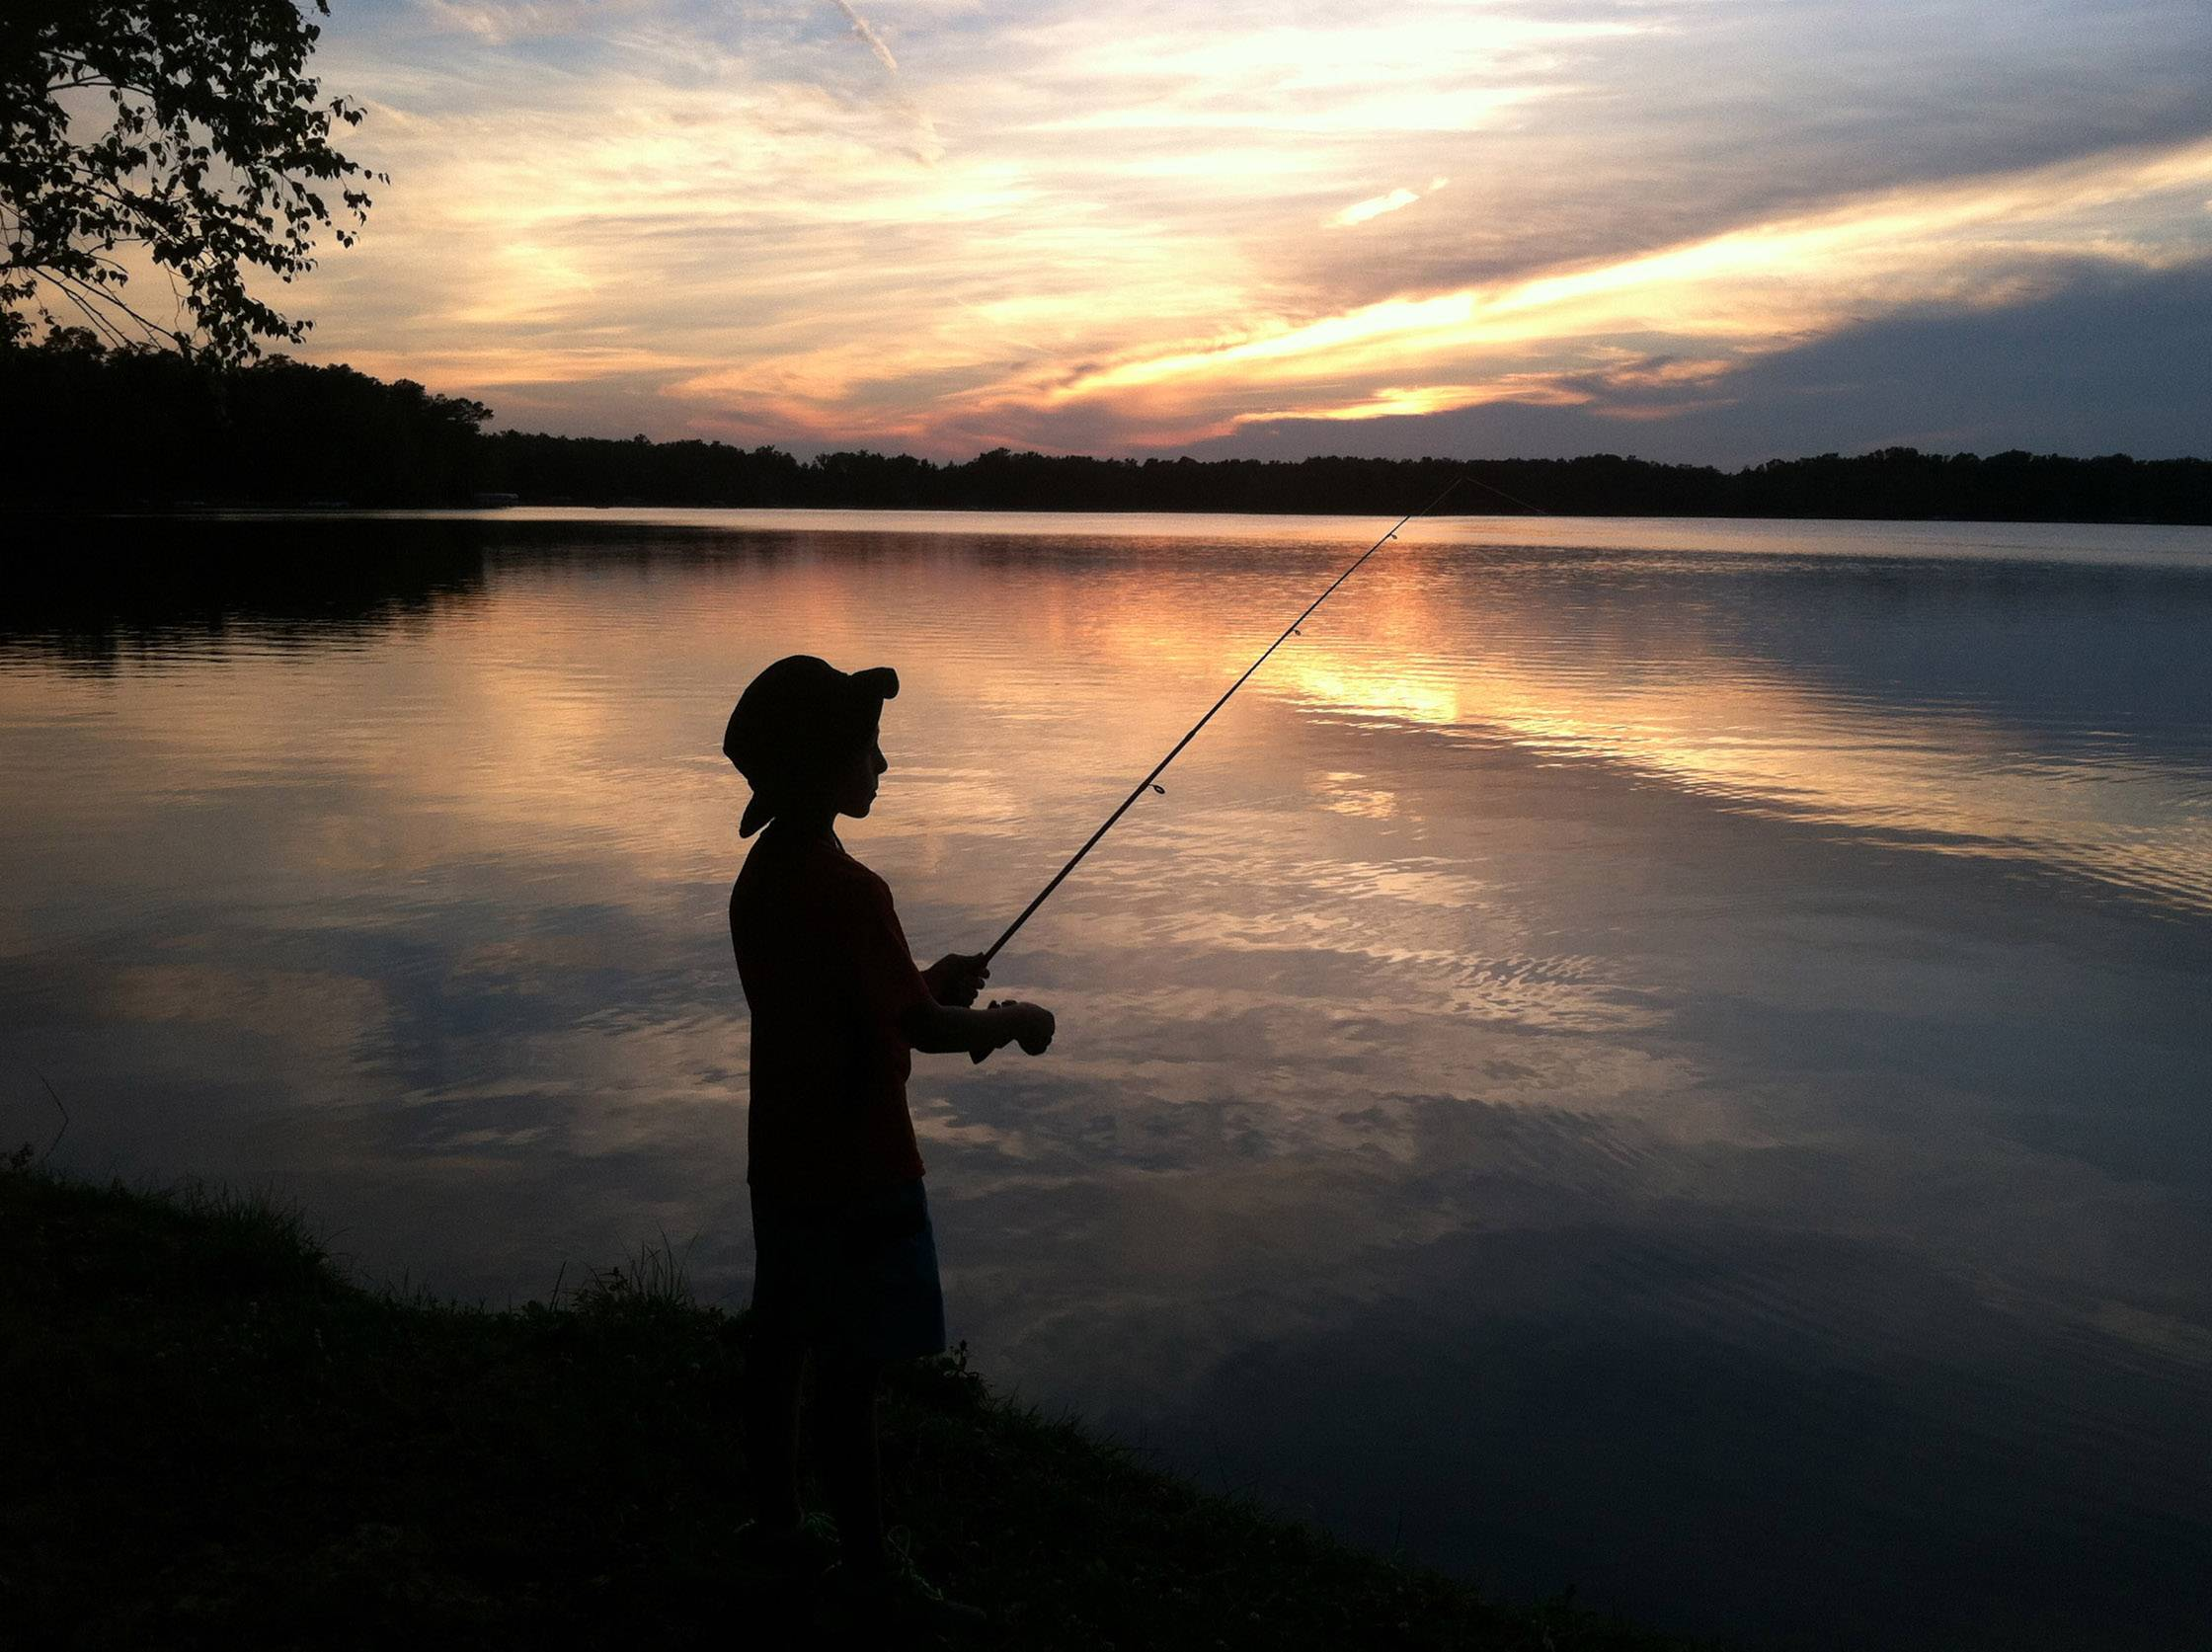 A boy fishes on Legend Lake as the sun sets in Wisconsin.